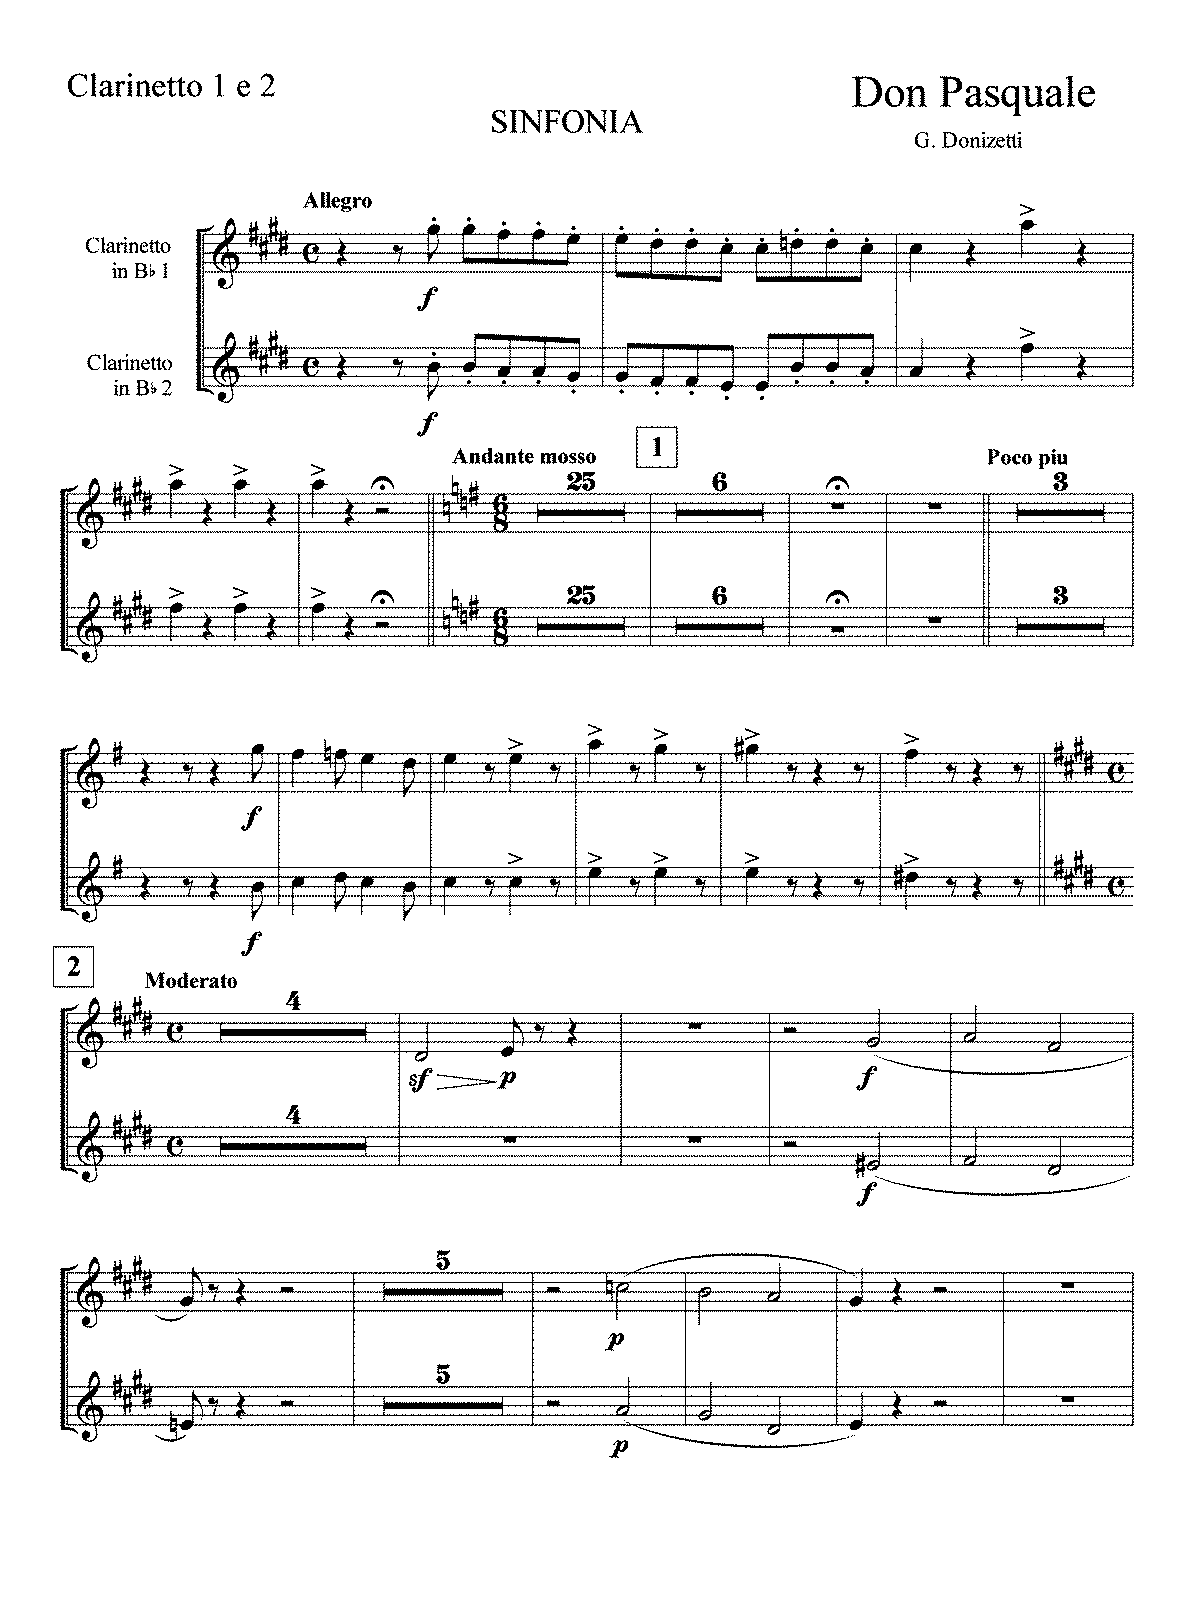 PMLP58429-Donizetti Don Pasquale Sinfonia Clarinets in B-flat.pdf